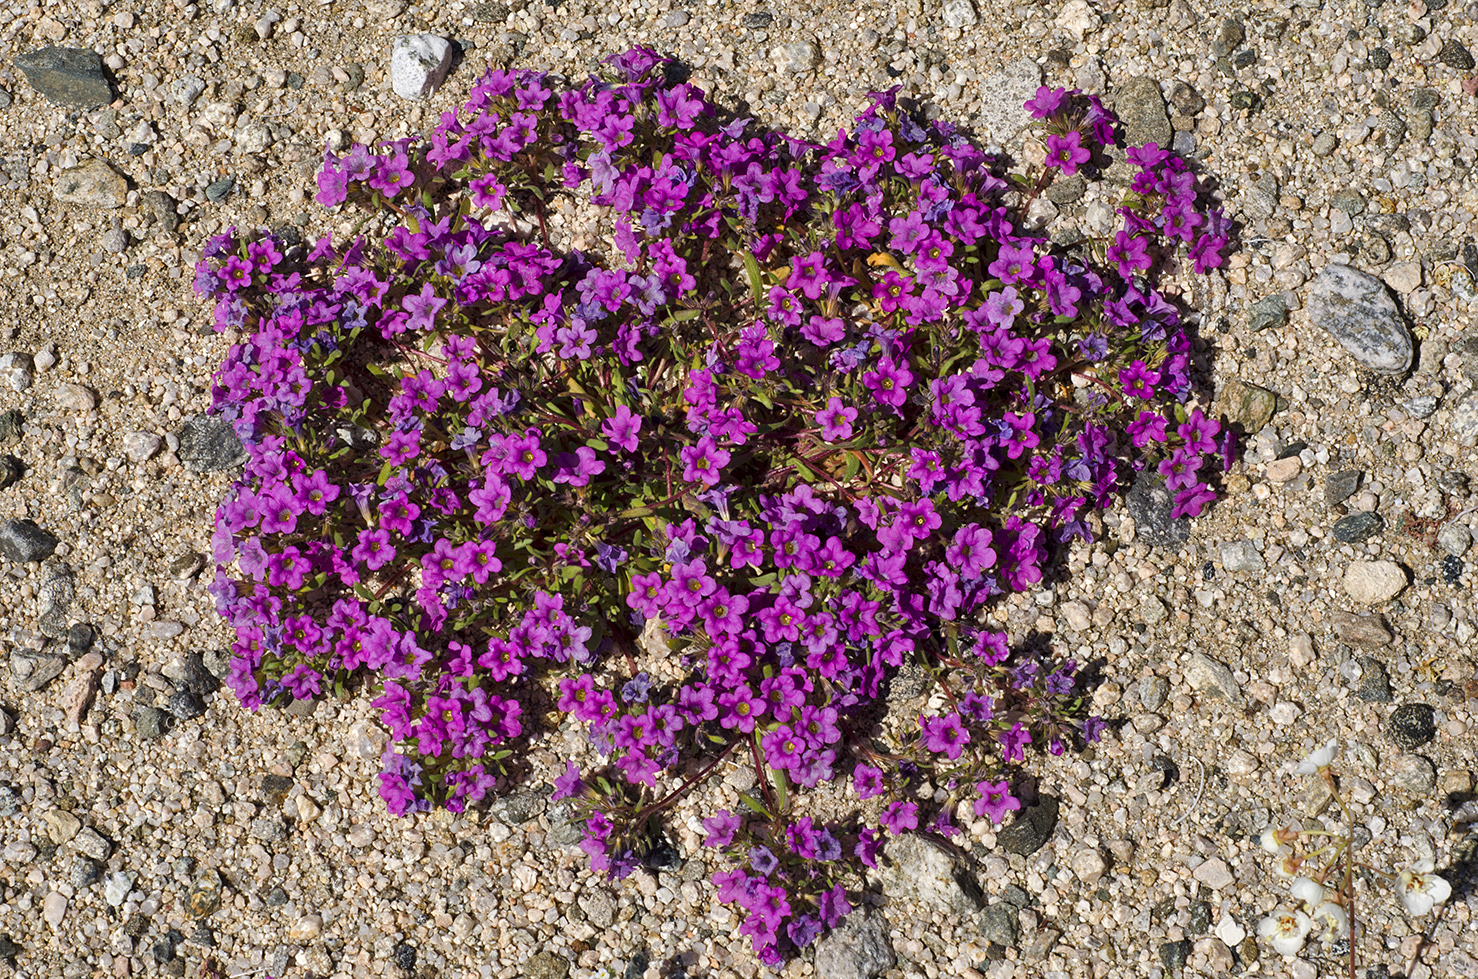 Joshua Tree National Park Wildflowers 23.jpg